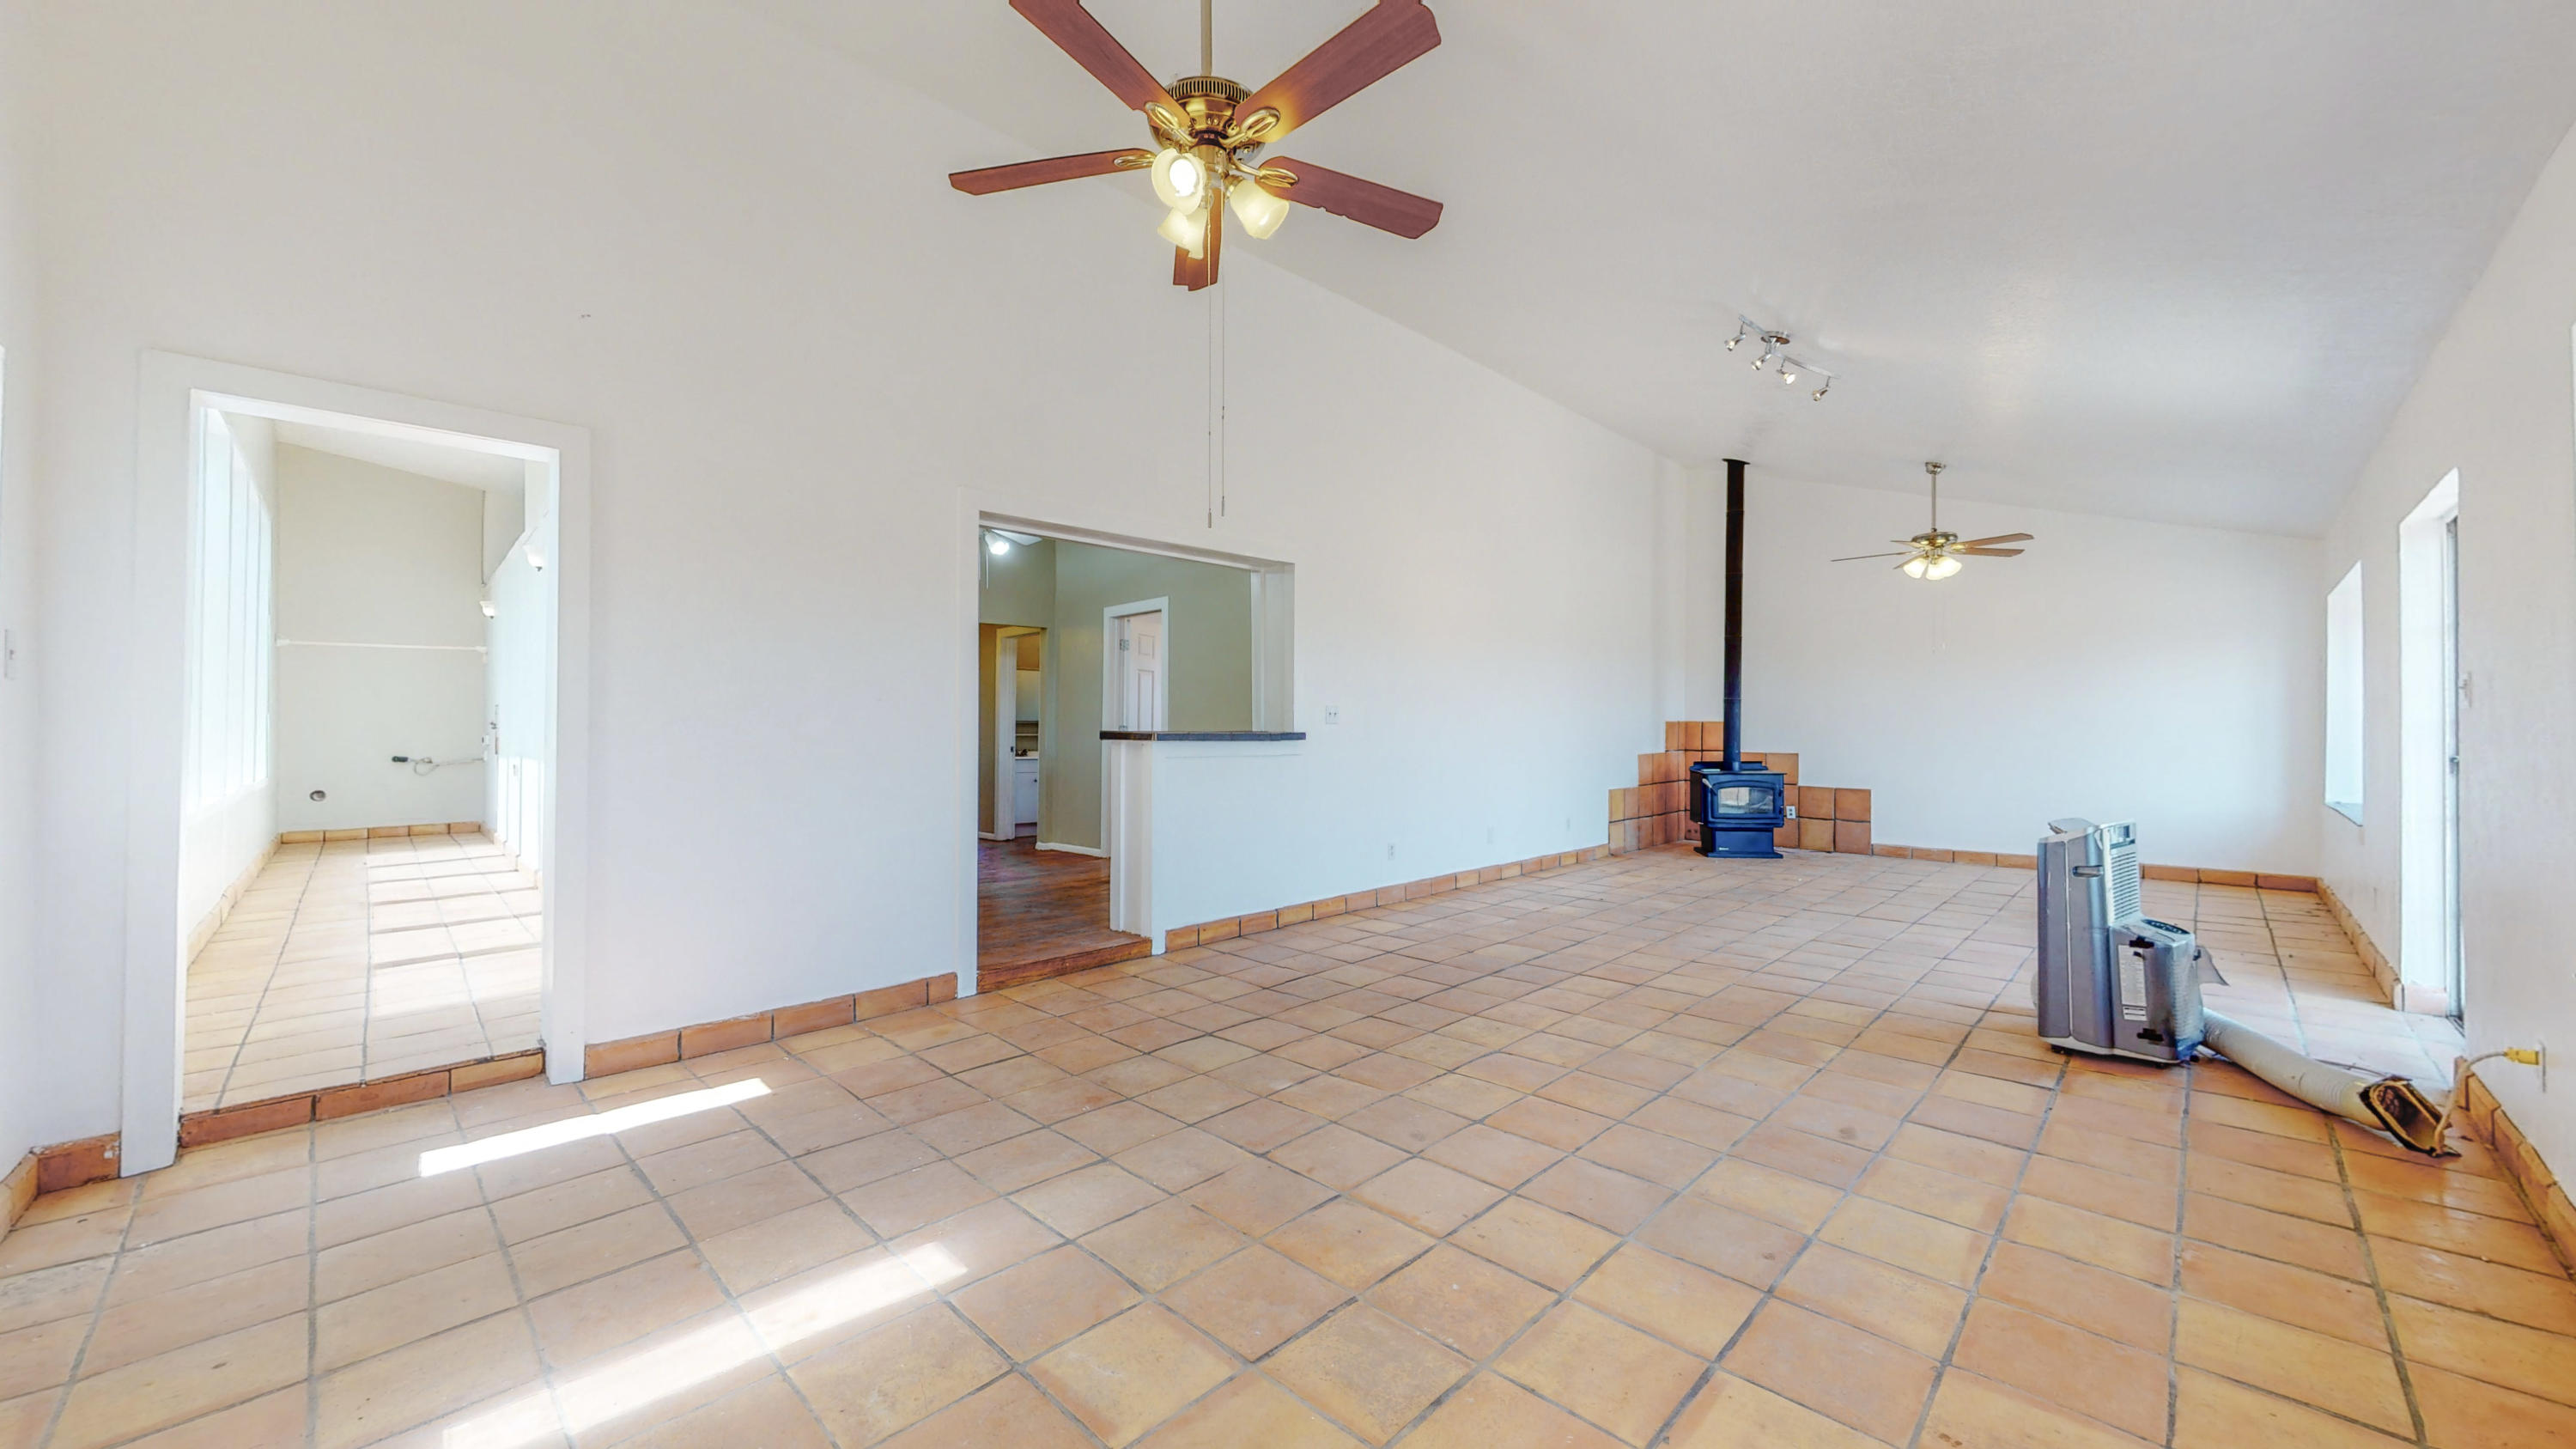 **We have an accepted offer with a 72 hour first right of refusal** Nice updated country home with views for miles. Enjoy our NM sunrises and sunsets, without leaving your home.  Sunroom off dining area, original wood flooring throughout with Saltillo tile in dining/living area, sunroom/laundry area, and master bath areas.  Fenced back yard. Fenced property with a 12'x12' metal run in. 12'x12' metal run in with one end covered that could easily be made into small pen or chicken coop. 25'x30' carport with high ceiling, concrete floor and electric. 13'x18'5'' garage/shed/workshop area. 8-10 minutes to Moriarty,16-18 minutes into Edgewood and approximately 30-35 minutes to Albuquerque.